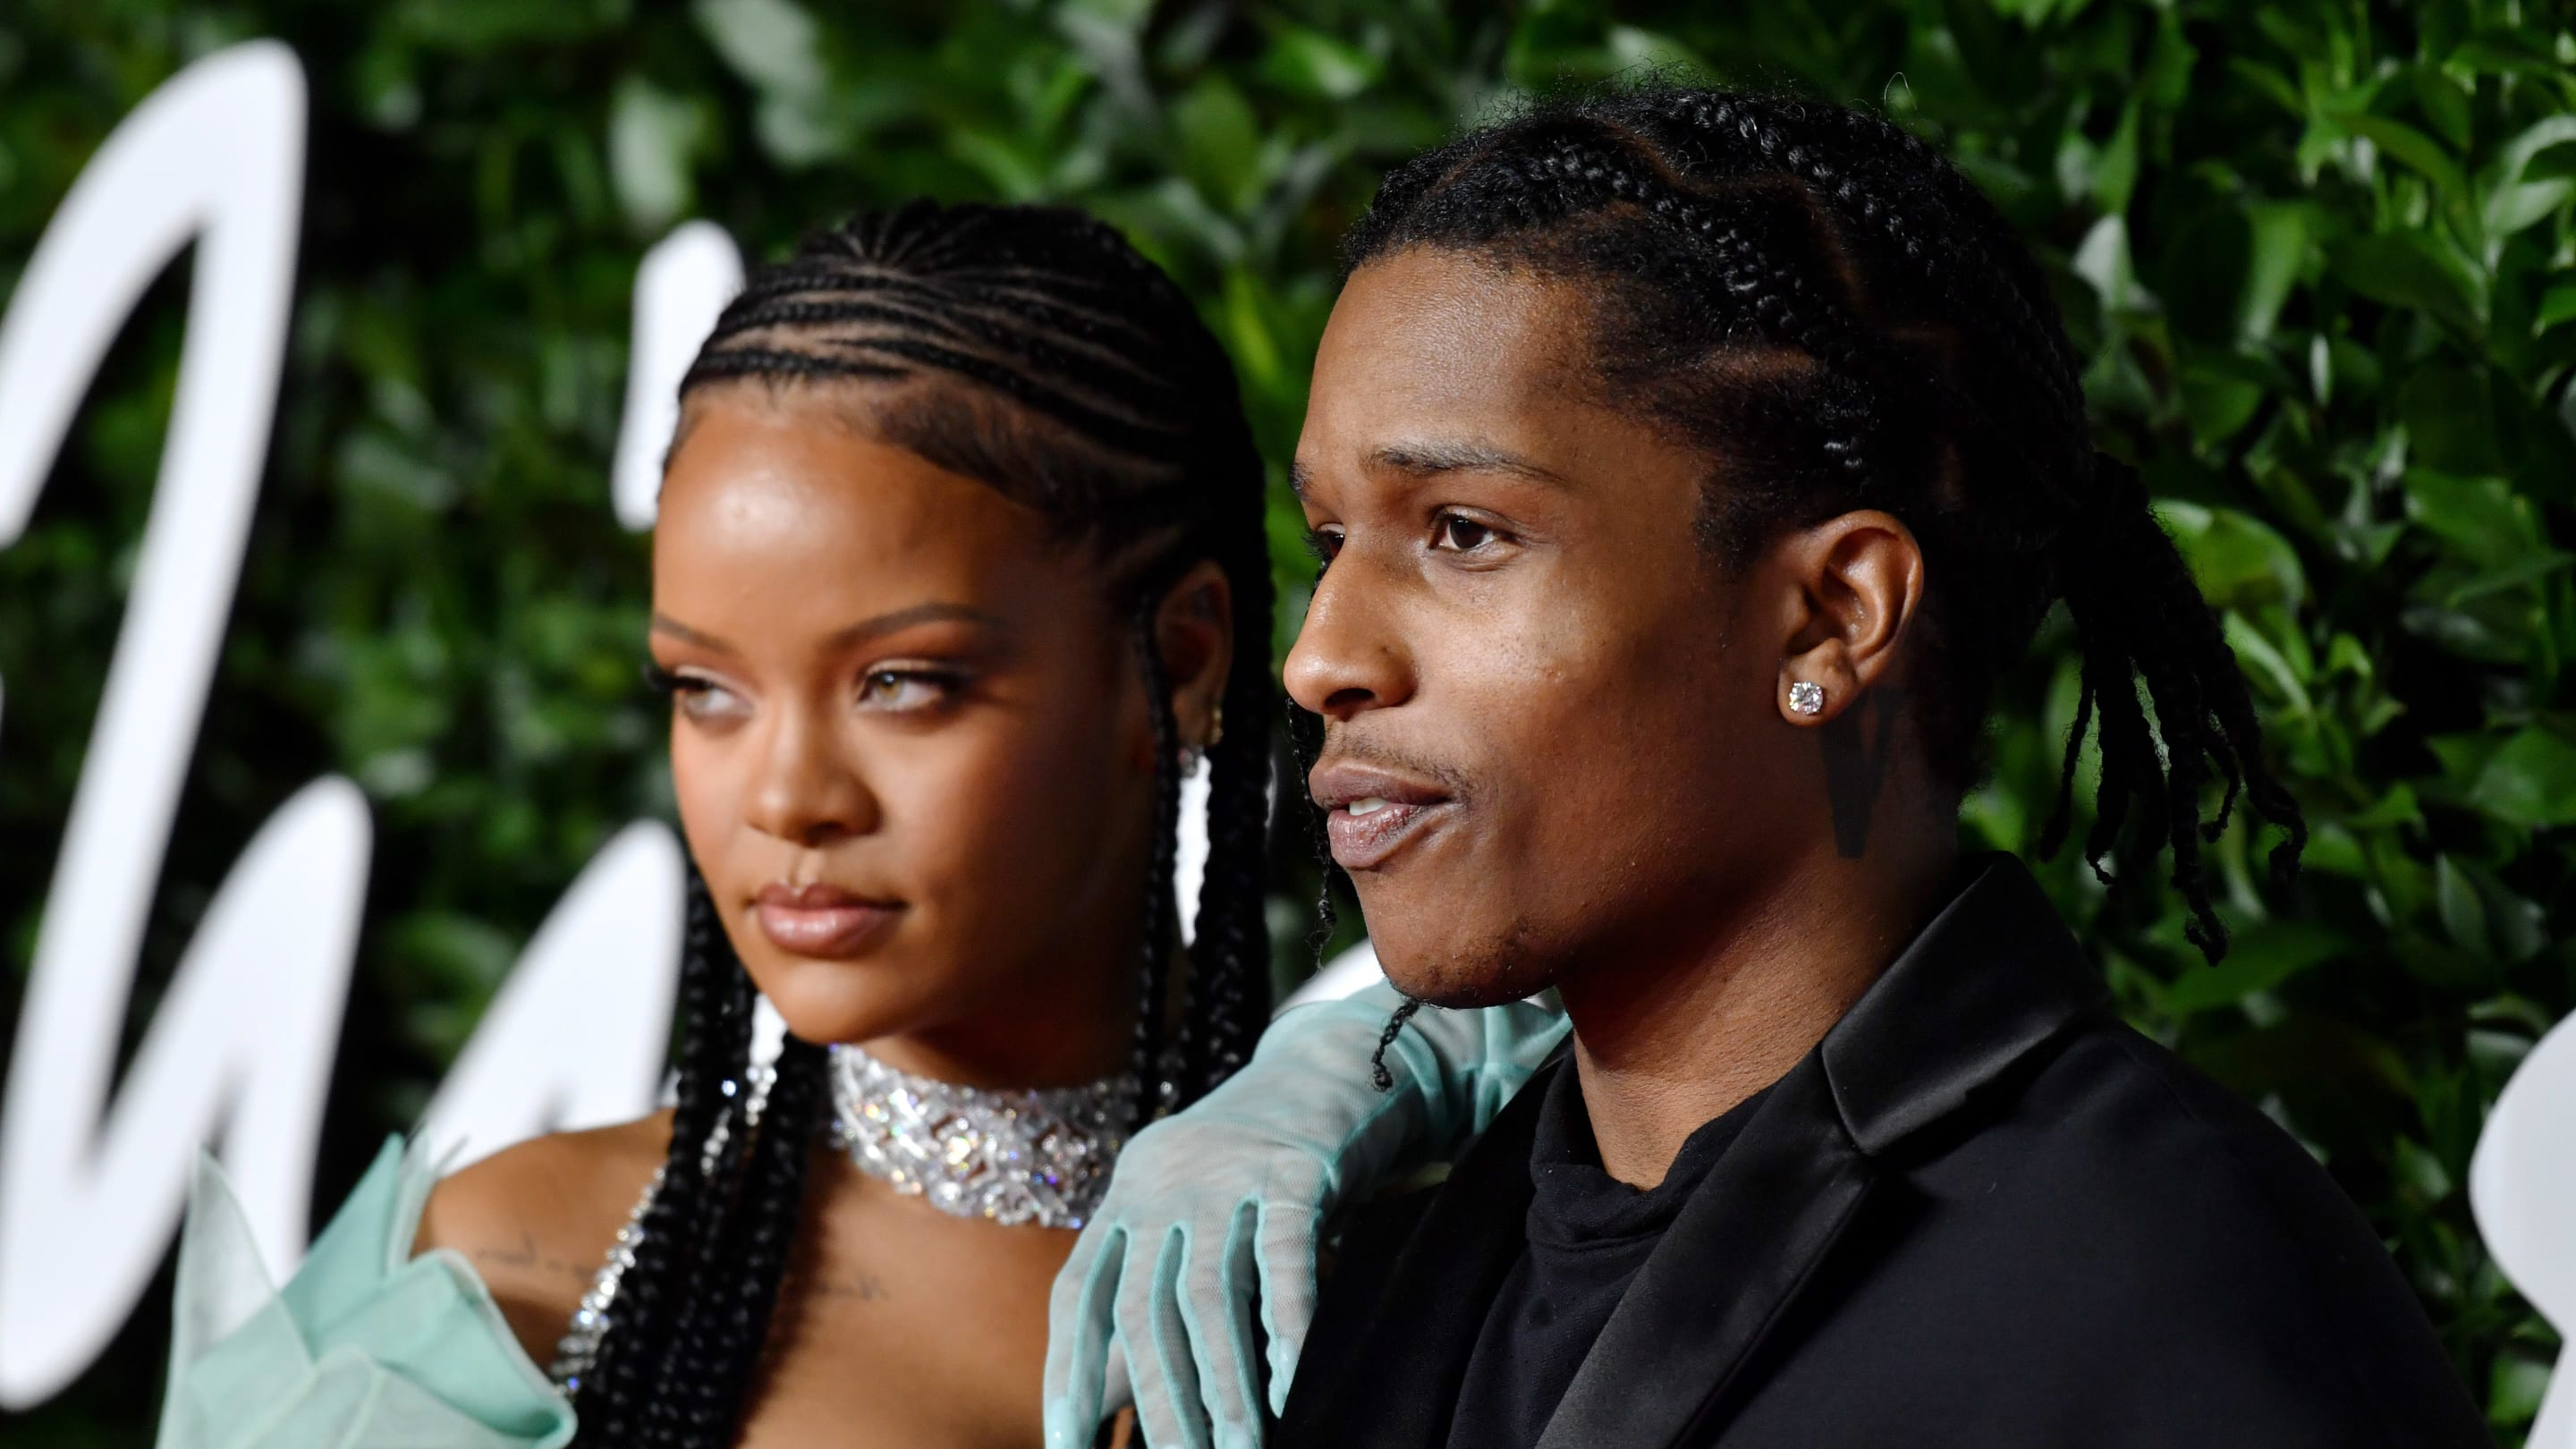 Rihanna and ASAP Rocky Reportedly Still Dating as They're Seen Out in L.A.